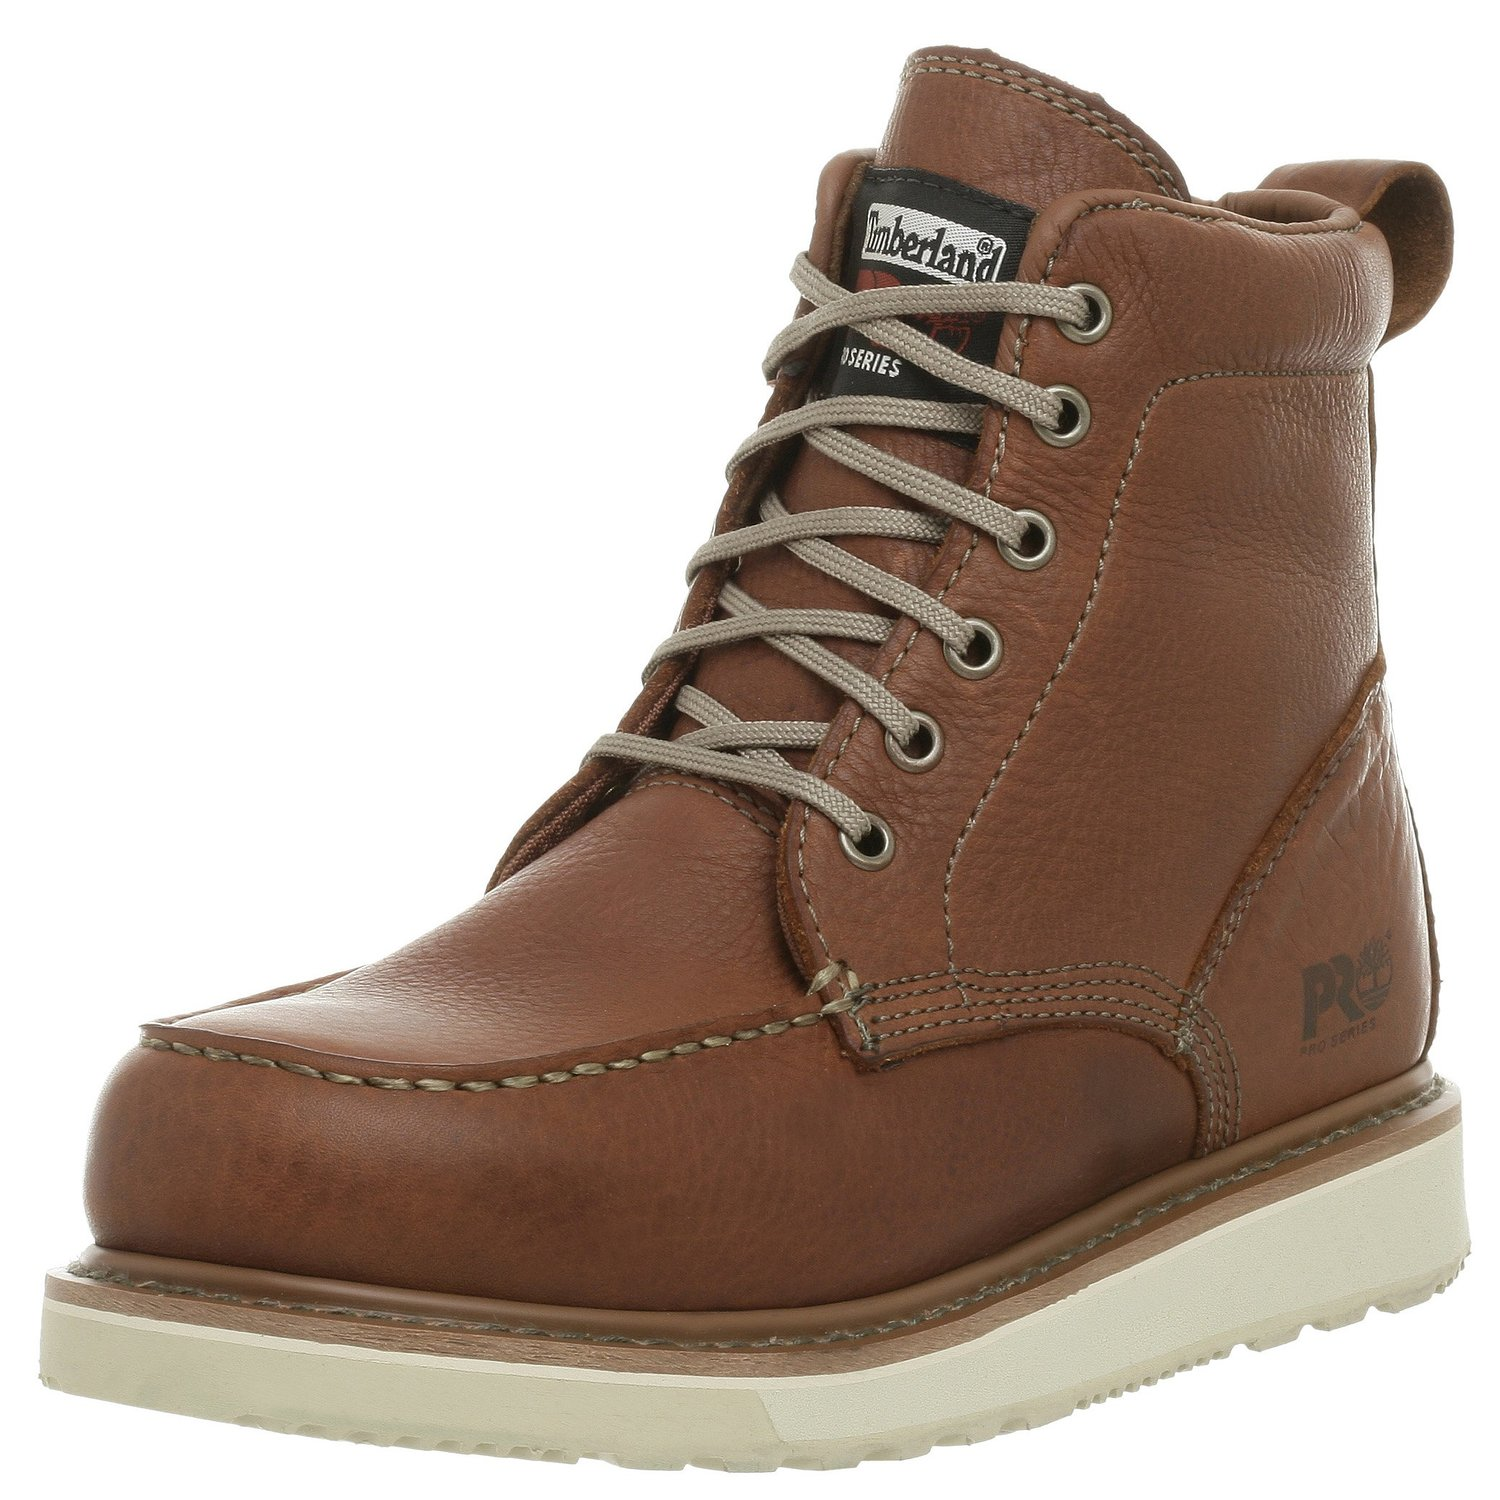 Timberland PRO Men's Wedge Sole Six-Inch Boot by Timberland